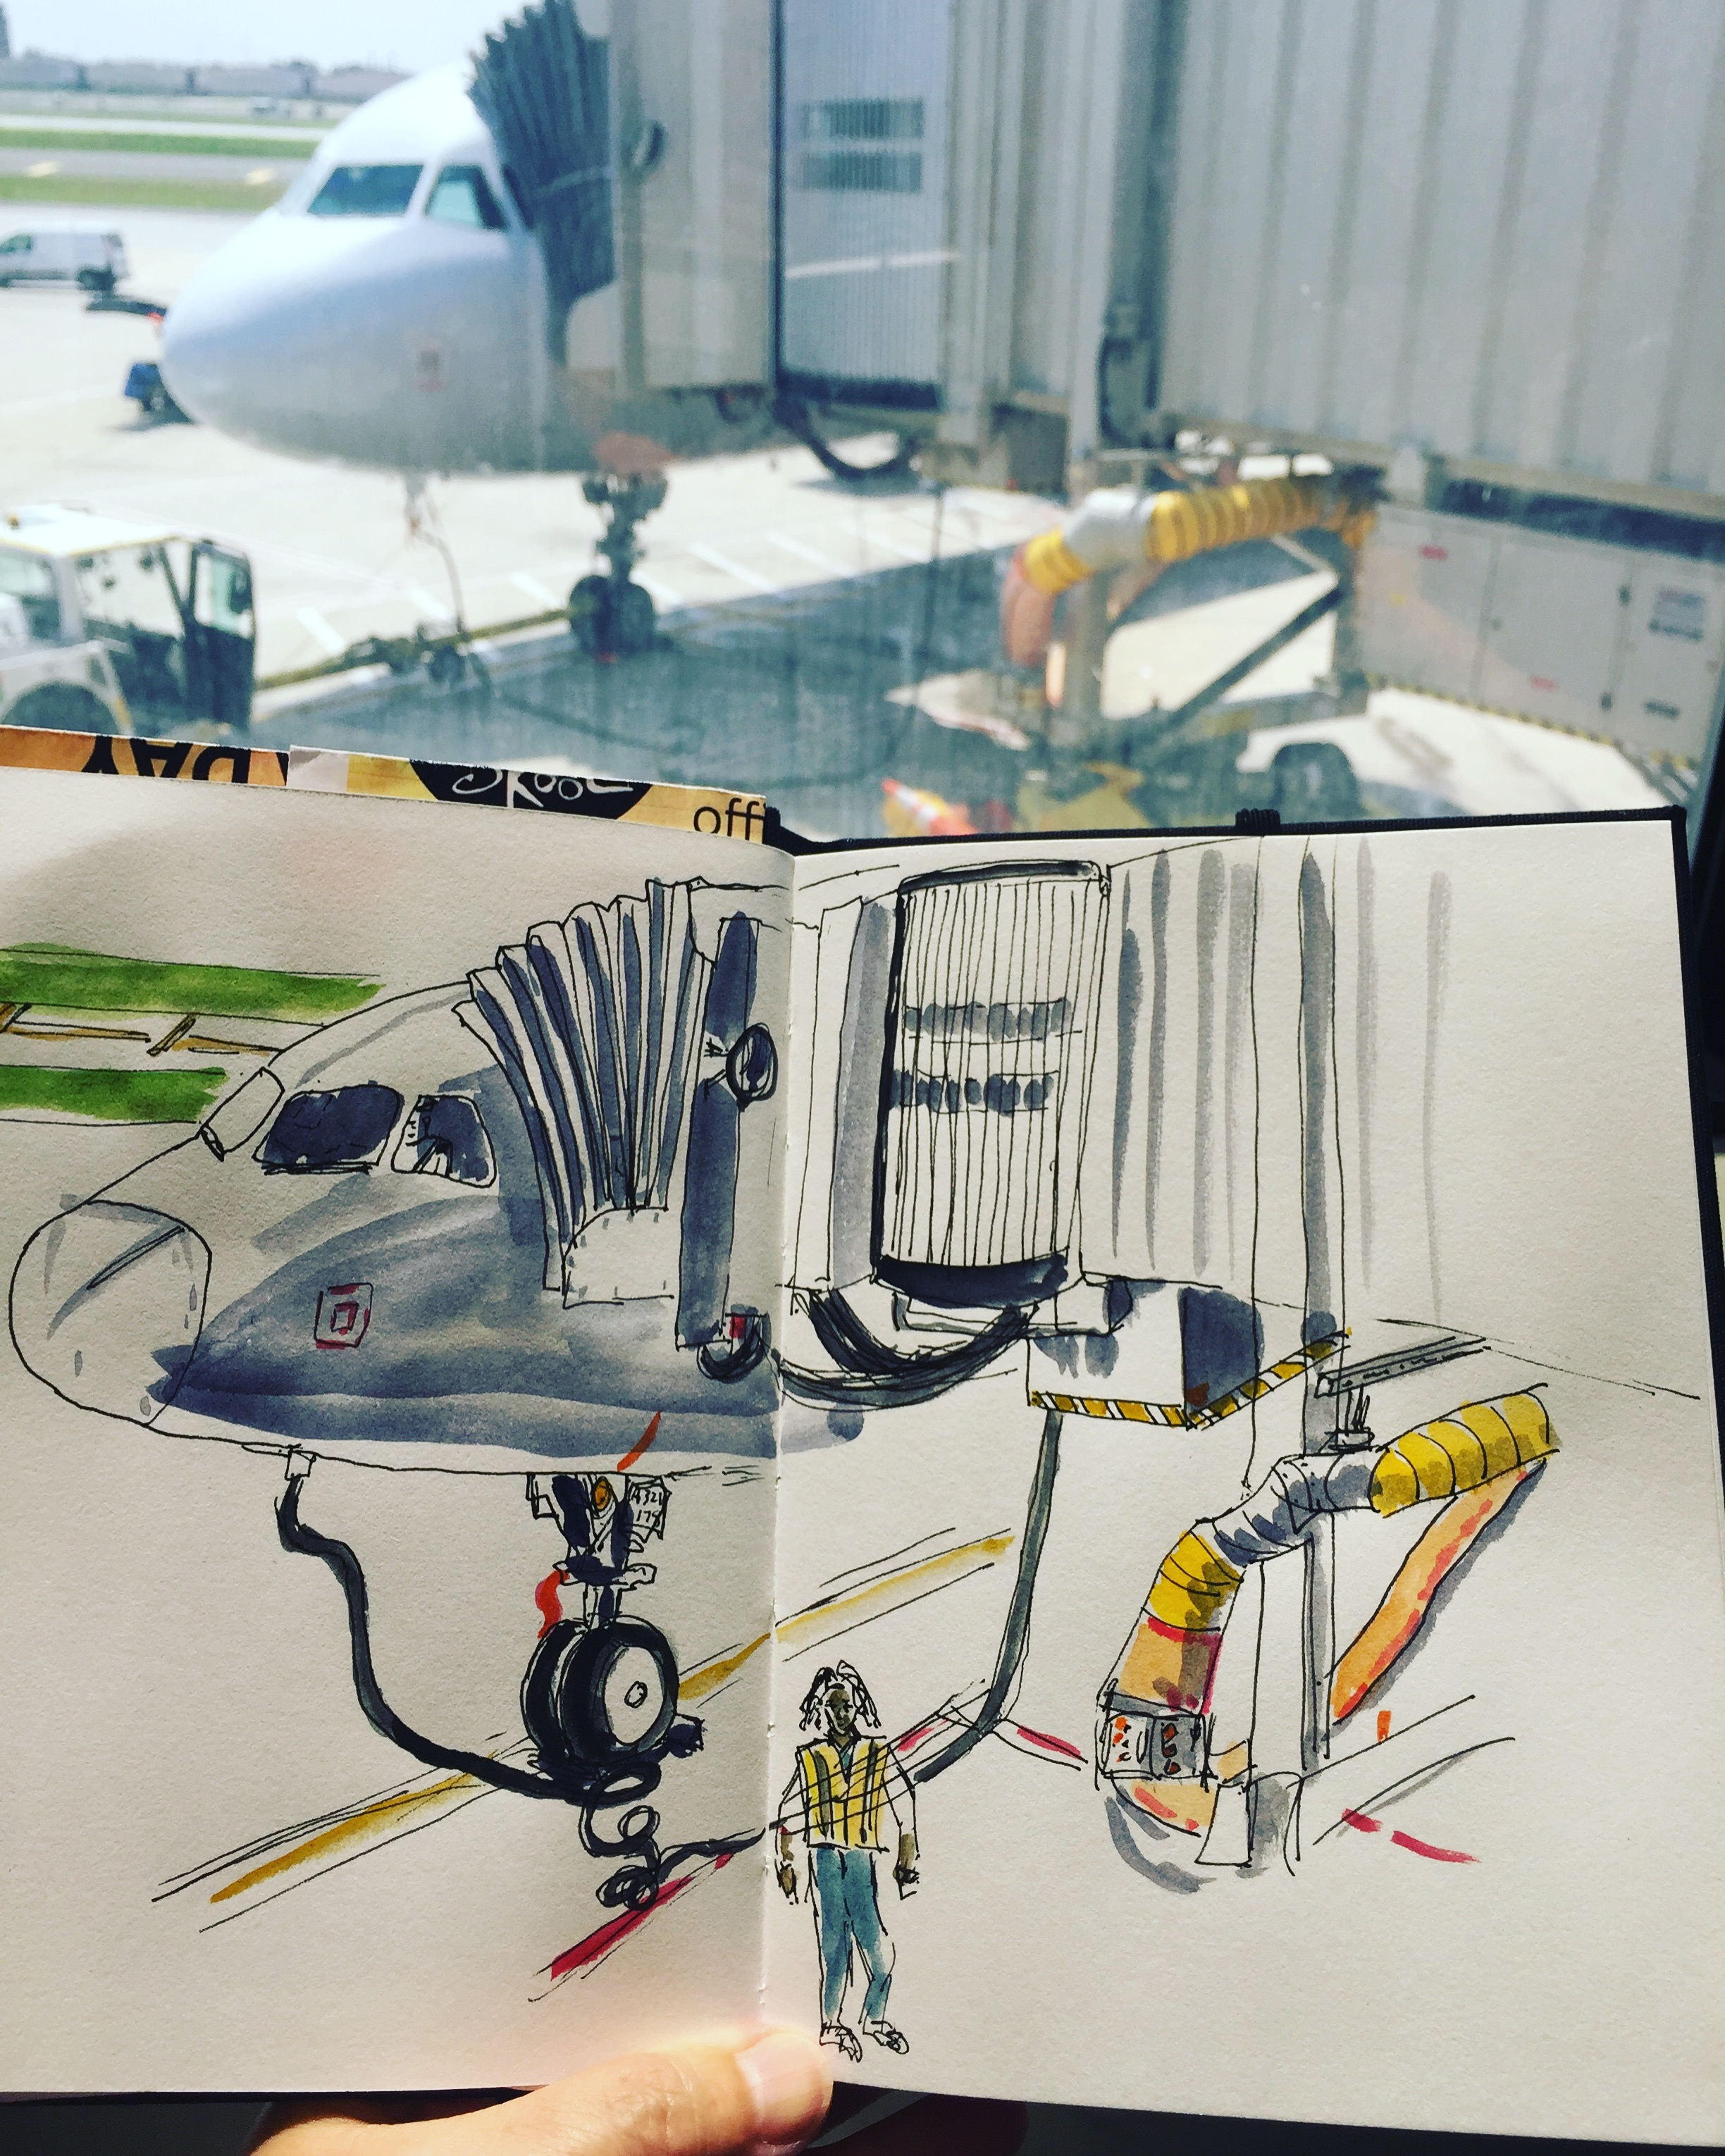 At PHL airport, waiting for my flight makes me happy when I can sketch it